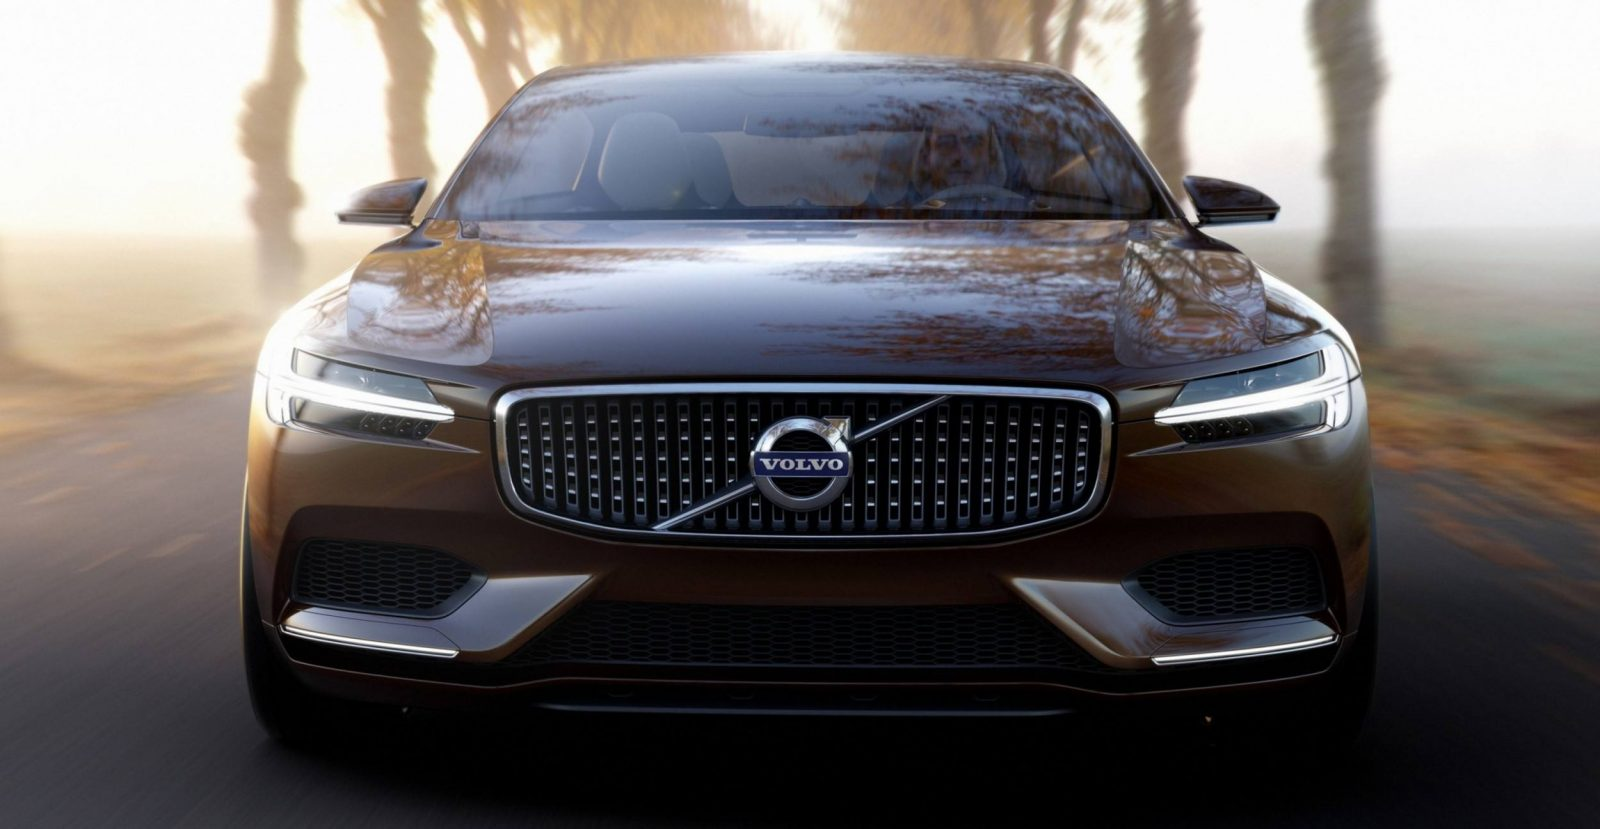 Concept Estate Confirms It! Volvo's New Design Lead Th